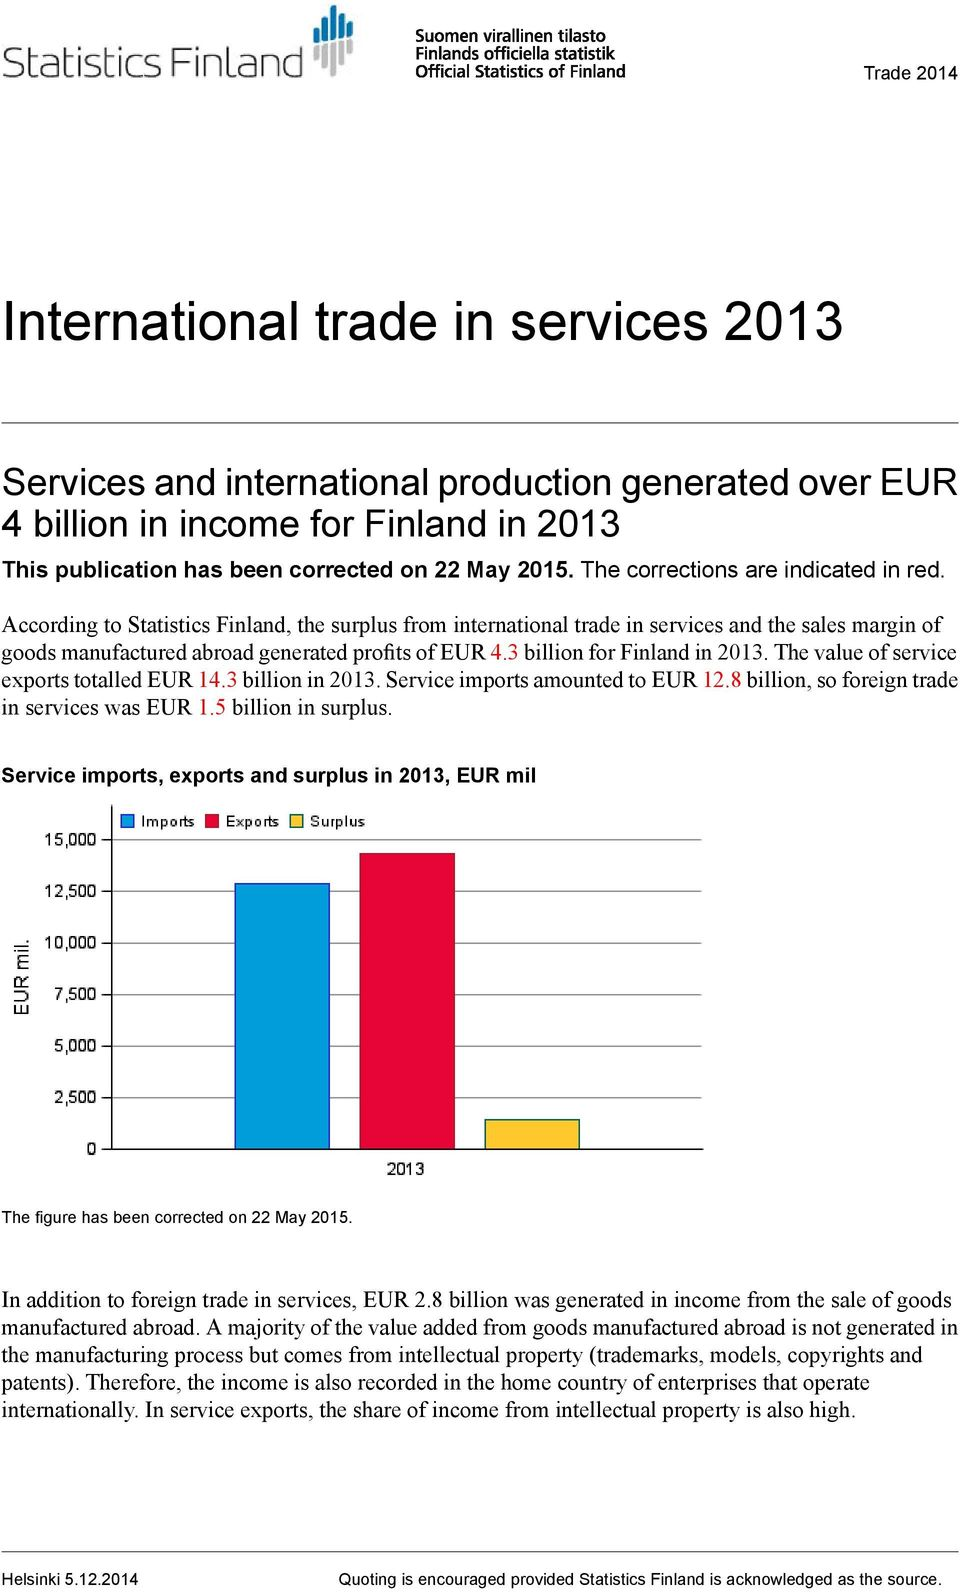 3 billion for Finland in. The value of service exports totalled EUR 14.3 billion in. Service imports amounted to EUR 12.8 billion, so foreign trade in services was EUR 1.5 billion in surplus.